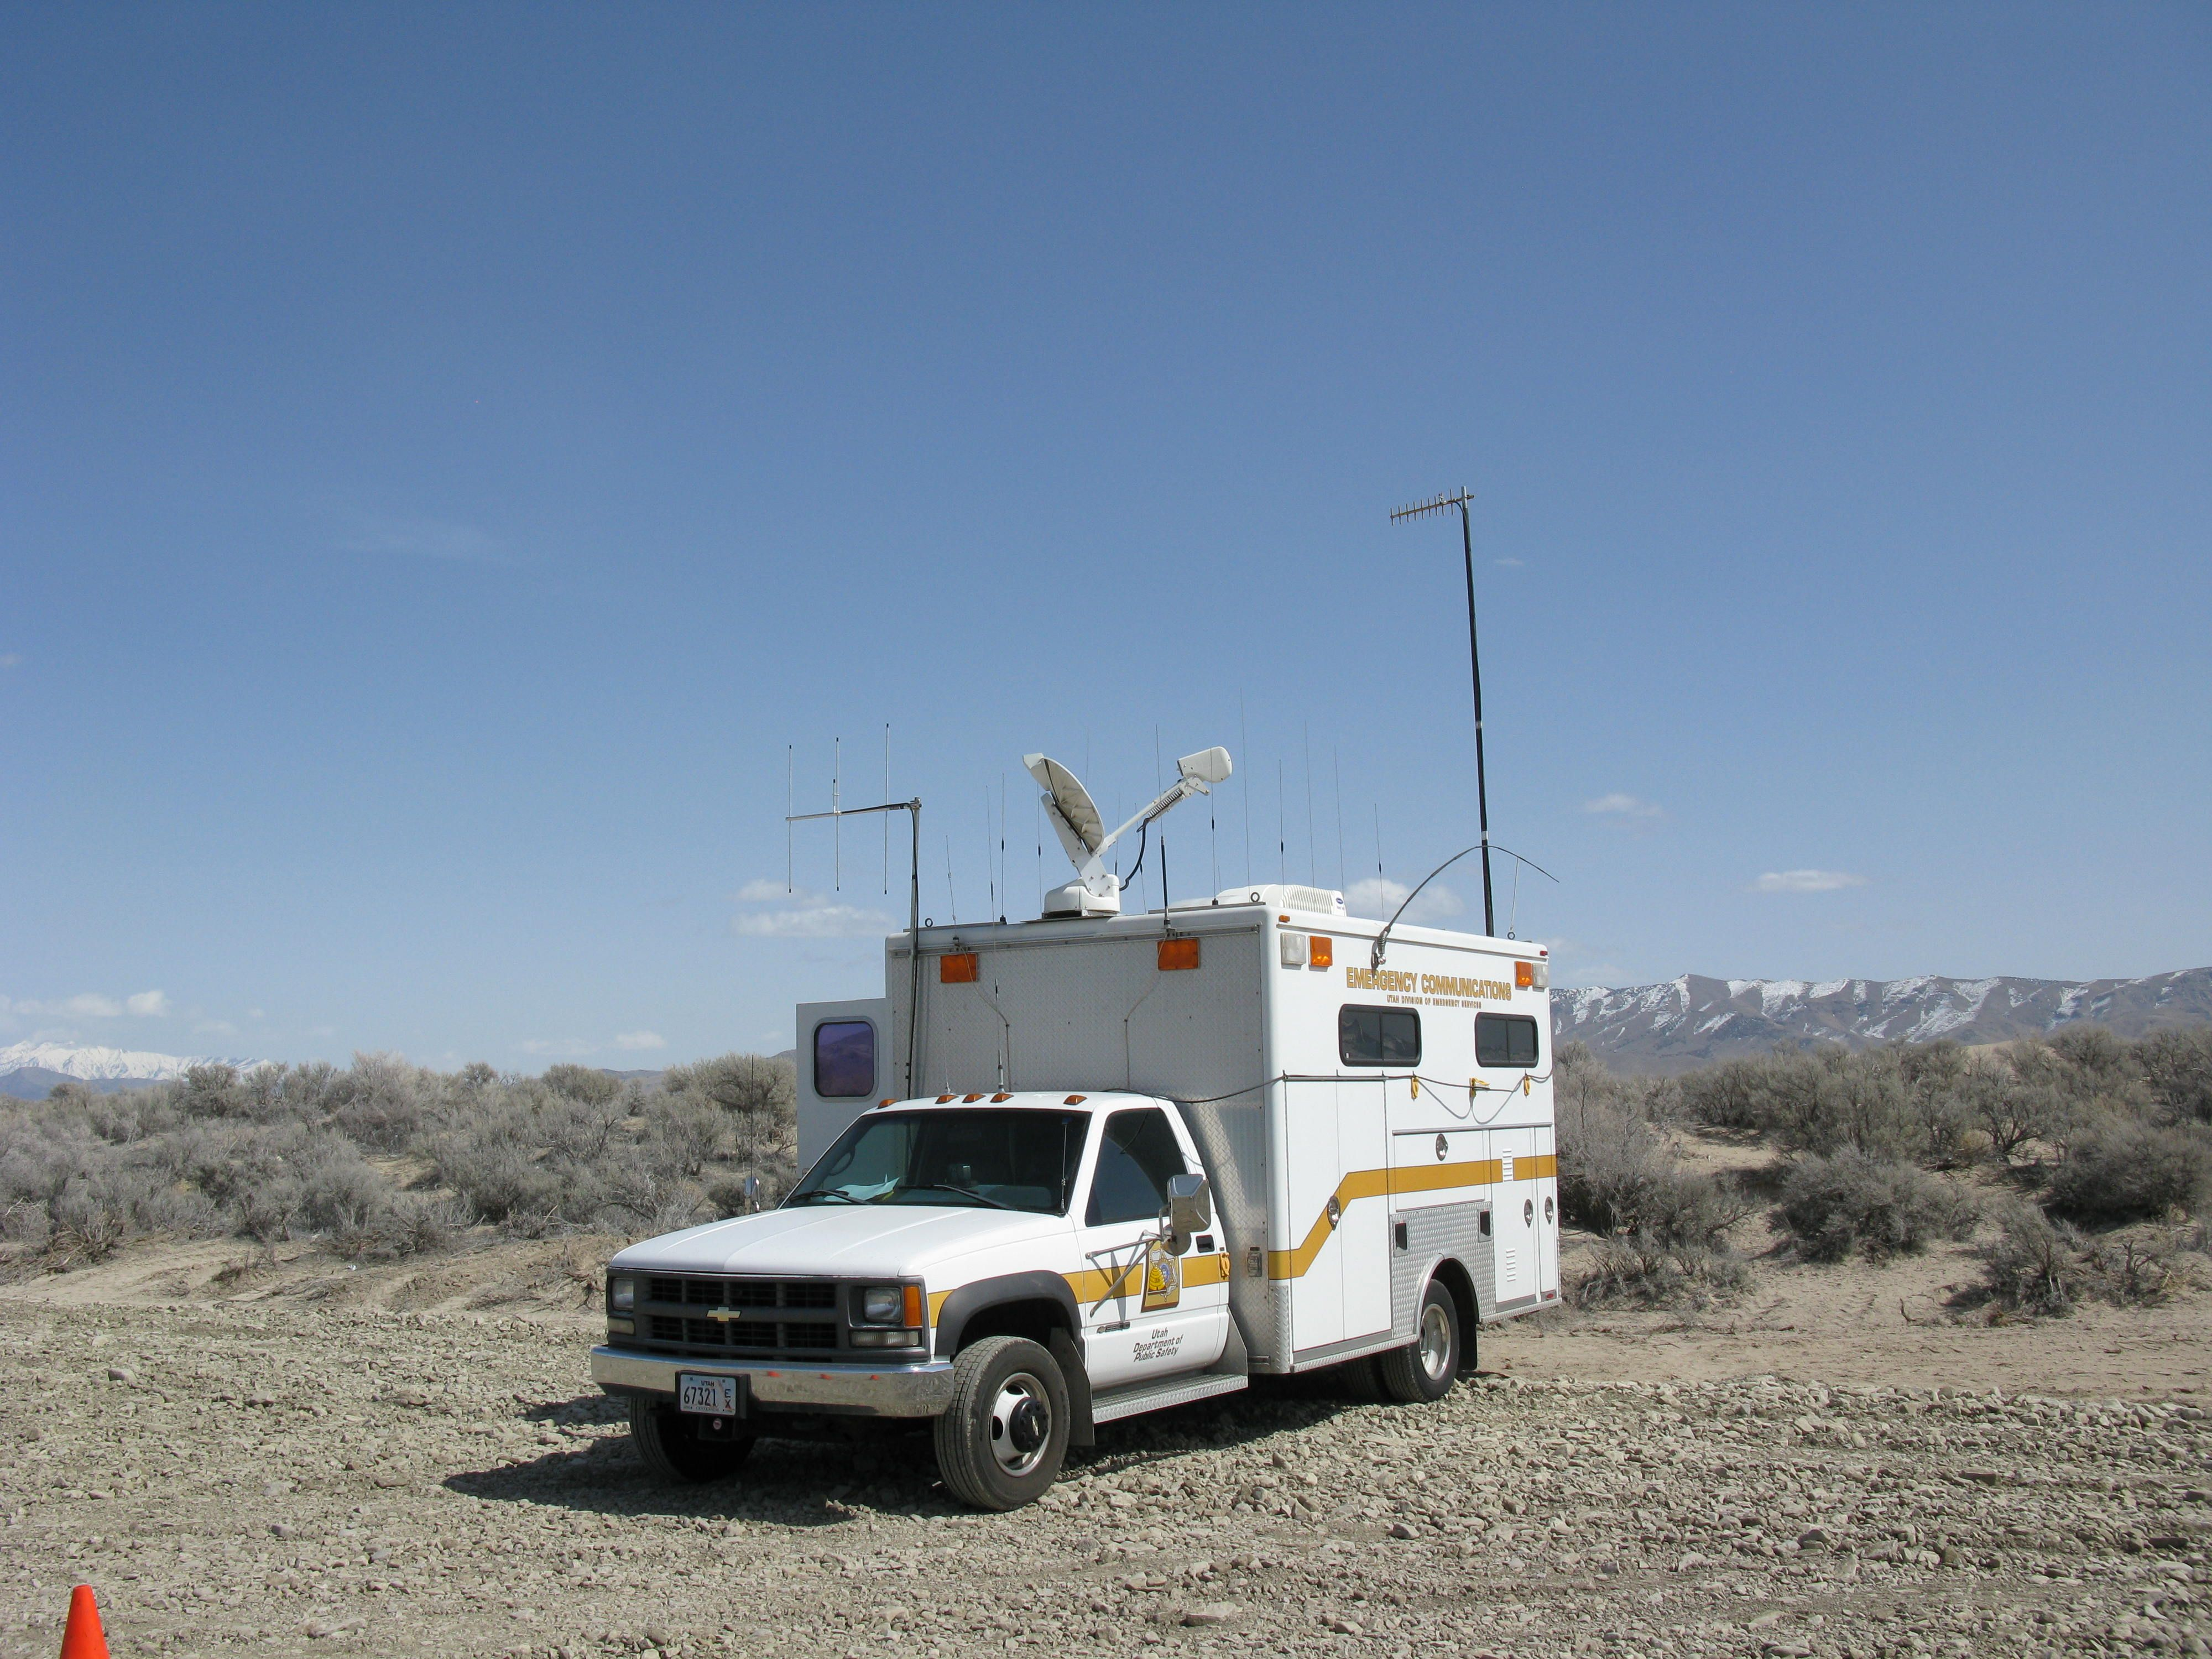 Utah Department of Public Safety Mobile Command Center